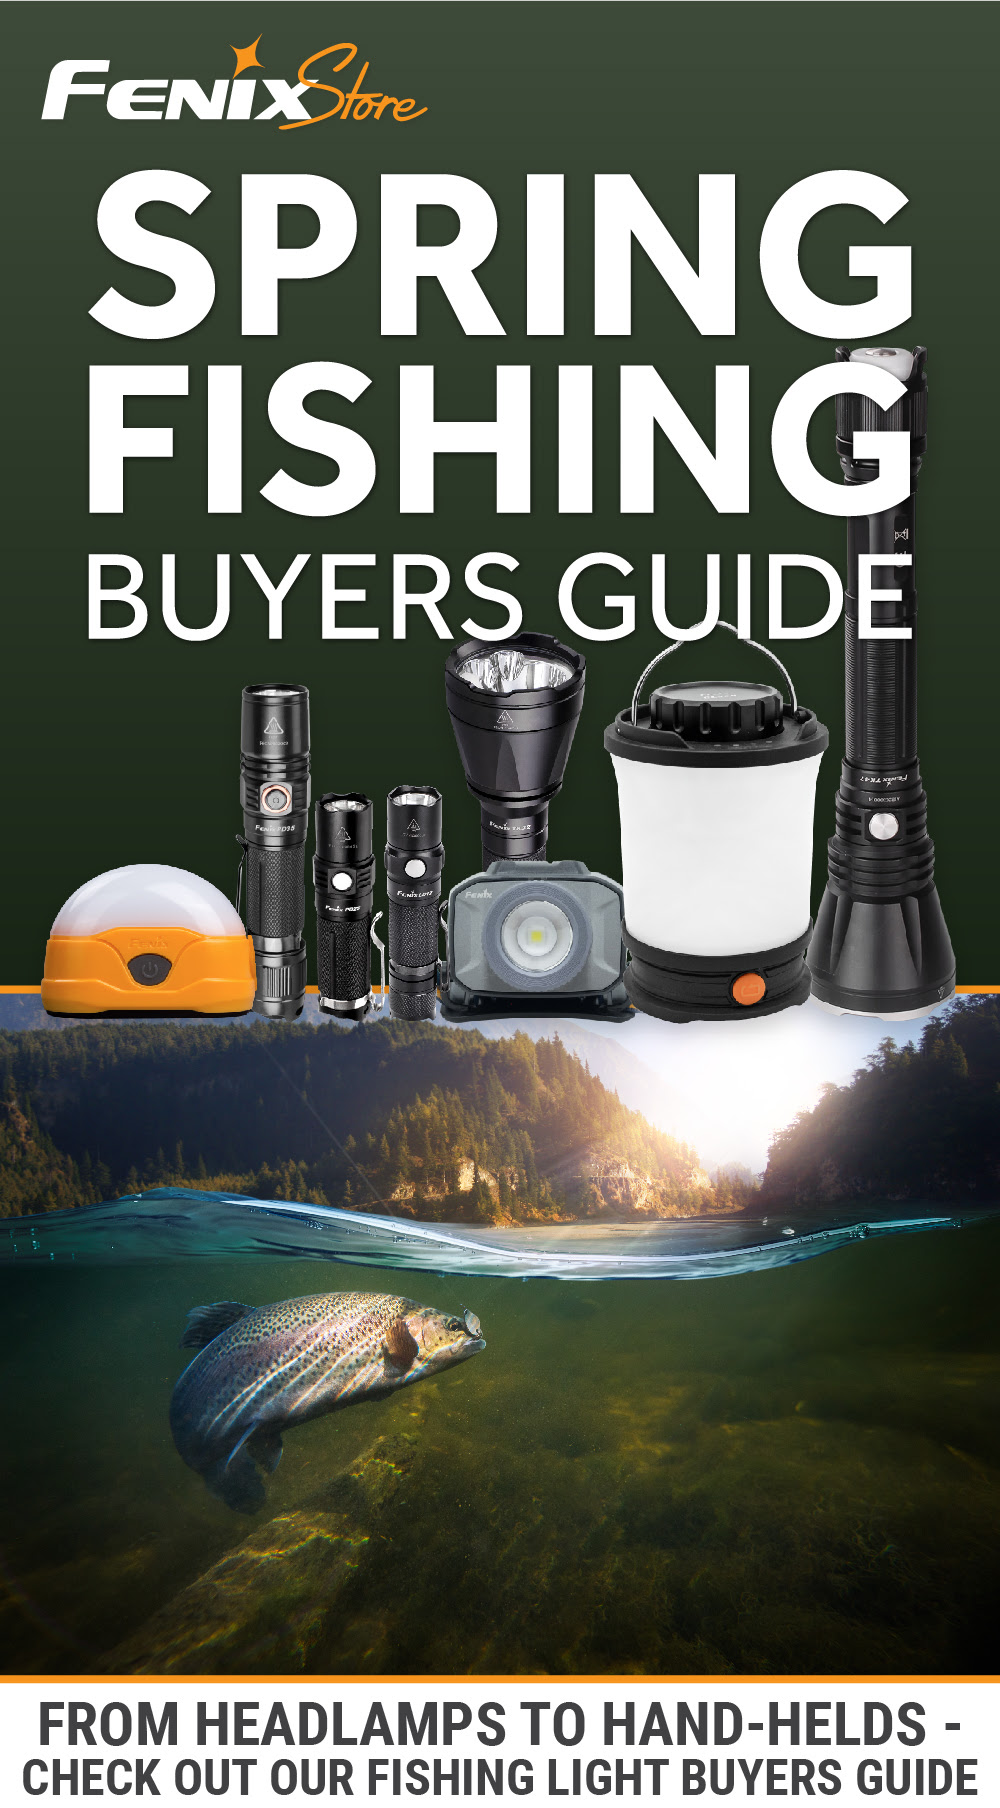 Fenix Store Spring Fishing Buyers Guide